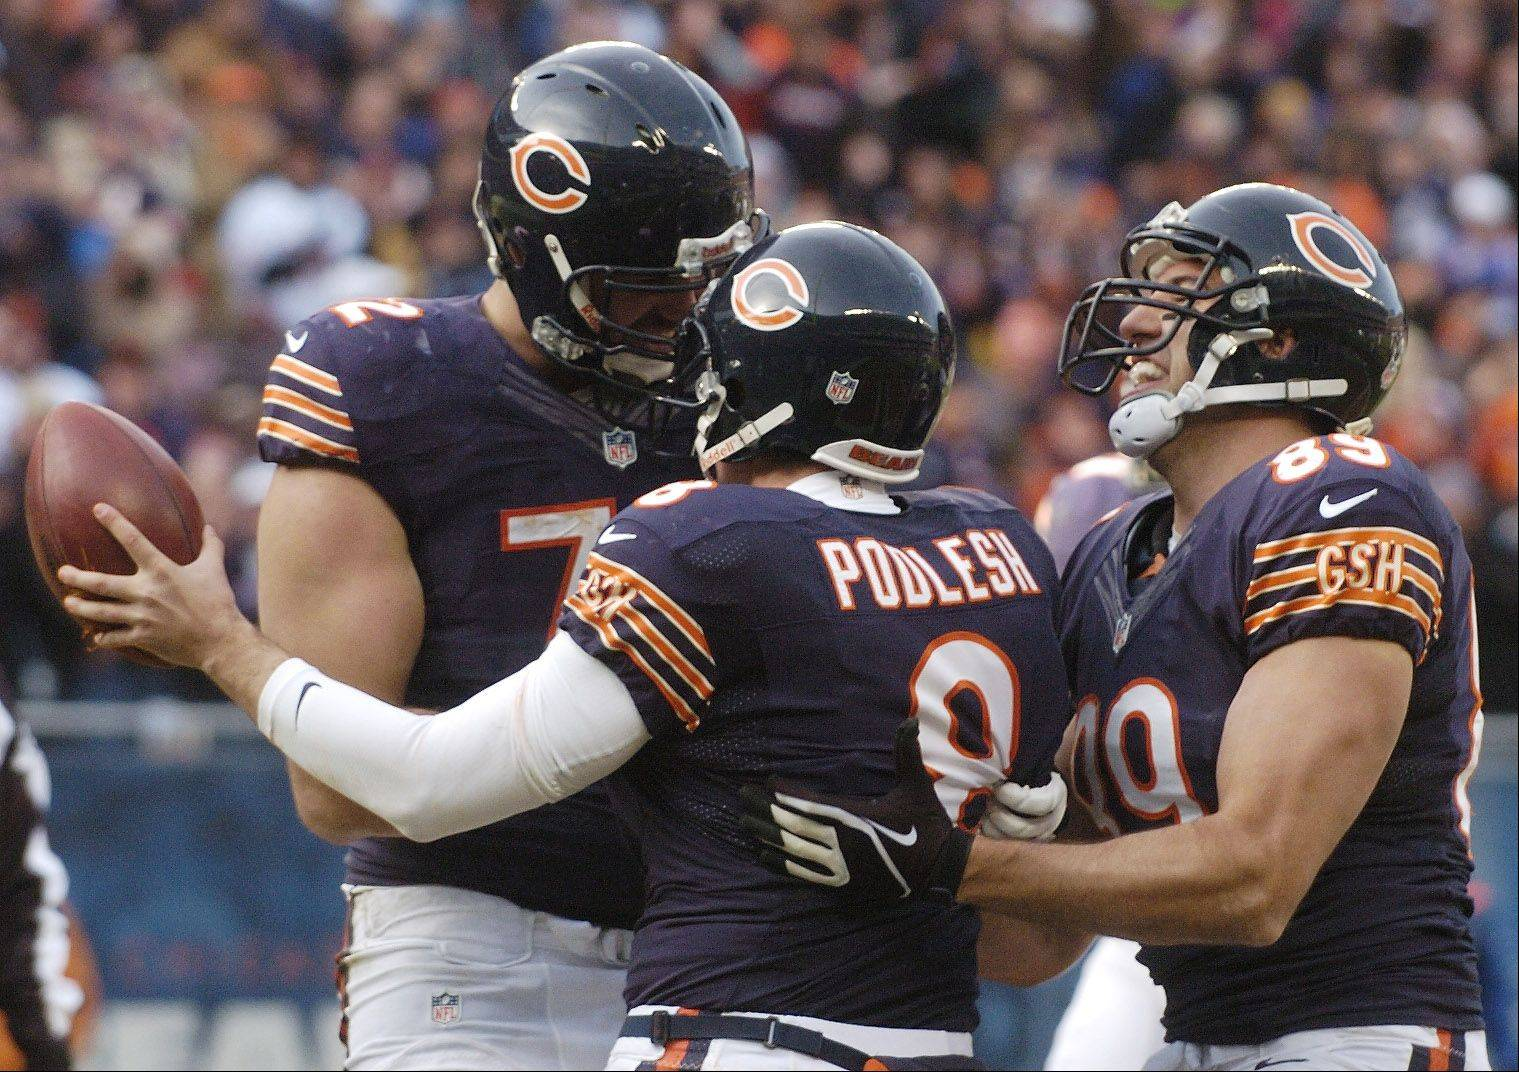 Chicago Bears holder Adam Podlesh, middle, celebrates his two-point conversion with teammates Gabe Carimi, left, and Matt Spaeth during the second quarter at Soldier Field Sunday.